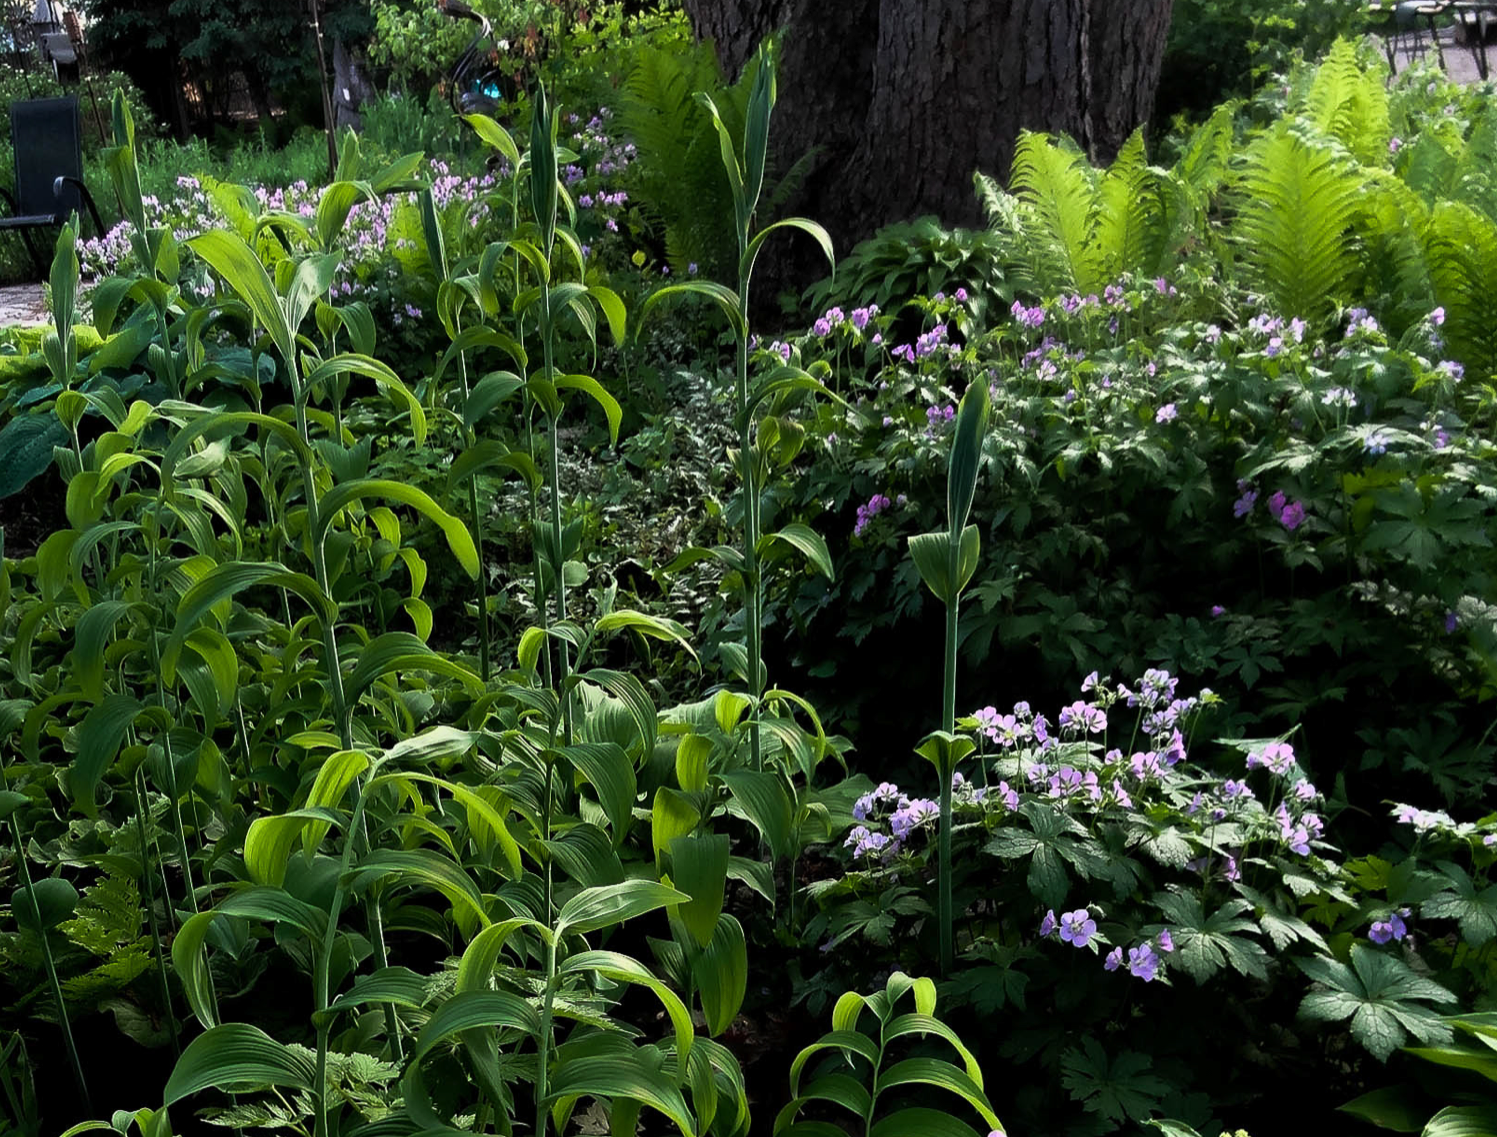 Architect And Accomplished Photographer Jeremy Will Present His Roach To Creating An Urban Oasis Through Landscaping Gardening With Native Plants